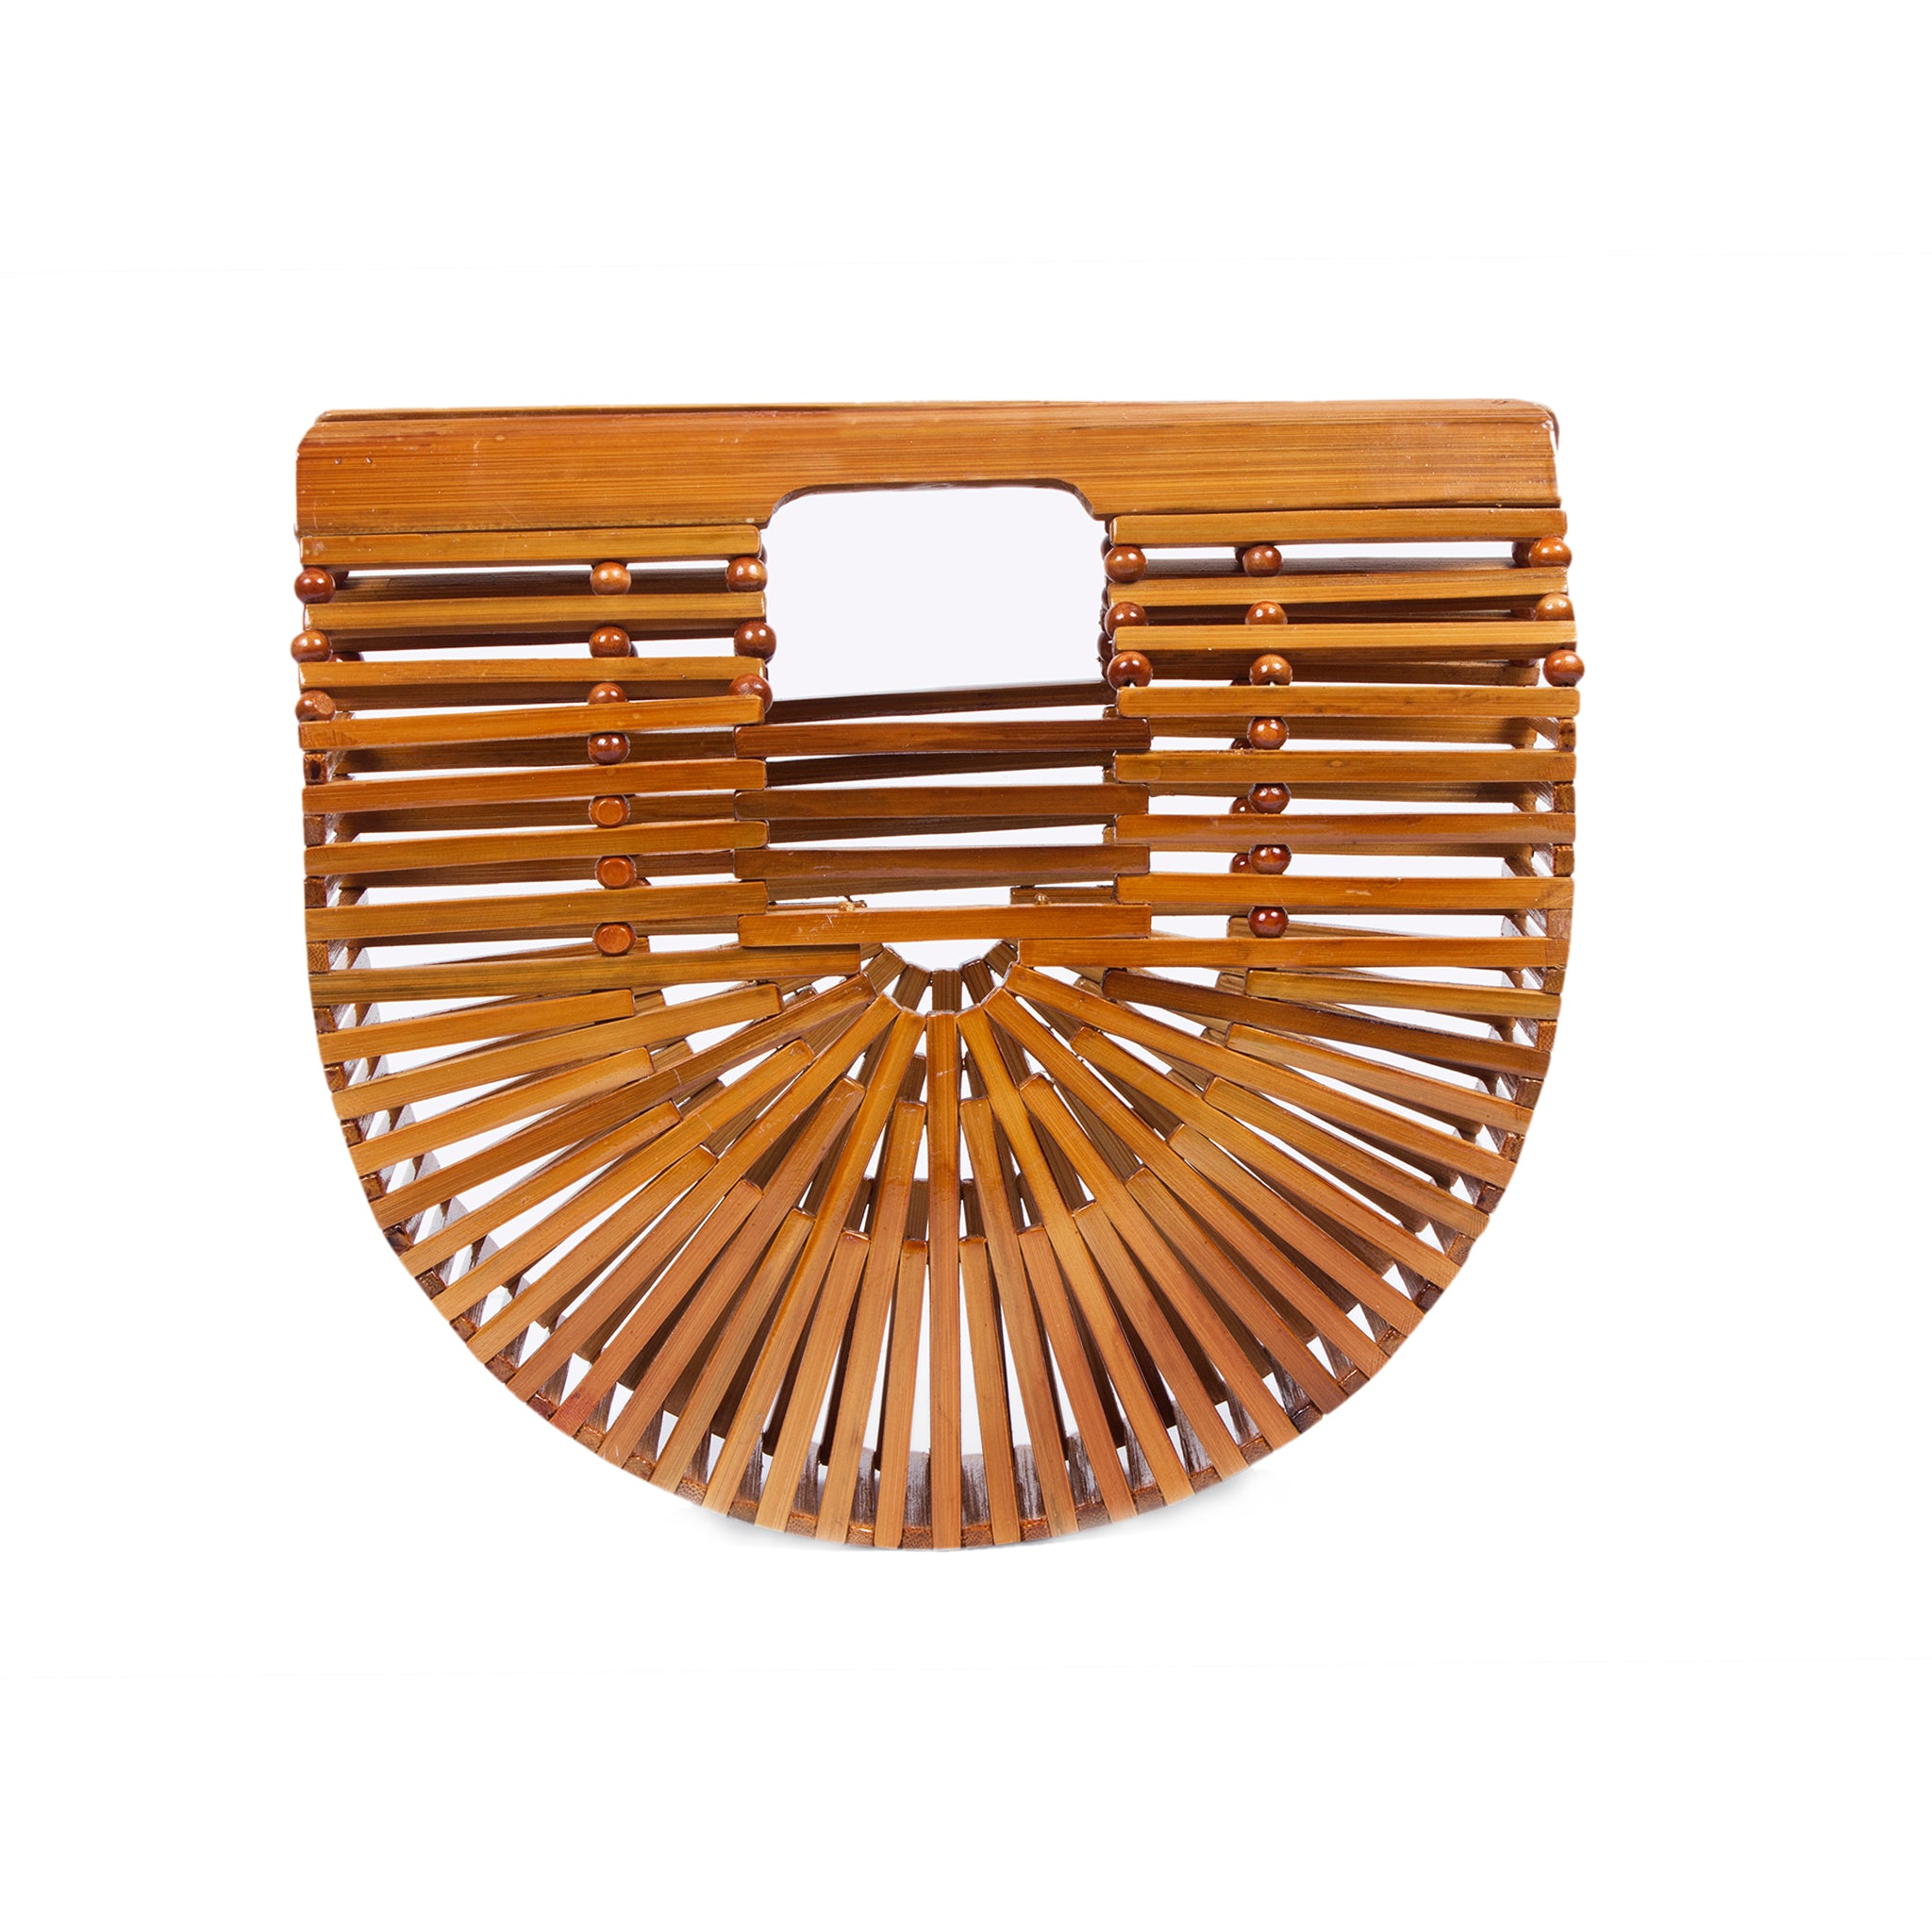 Bags and purse; bamboo ark bag; Cult gaia; black bamboo ark bag; Halfmoon bamboo bag; Wooden handbag; Handbags; Wooden Clutch; Bamboo Clutch; Affordable bamboo ark bag; Bali basket bag; Bamboo bag under $100; Top Handle bamboo bag